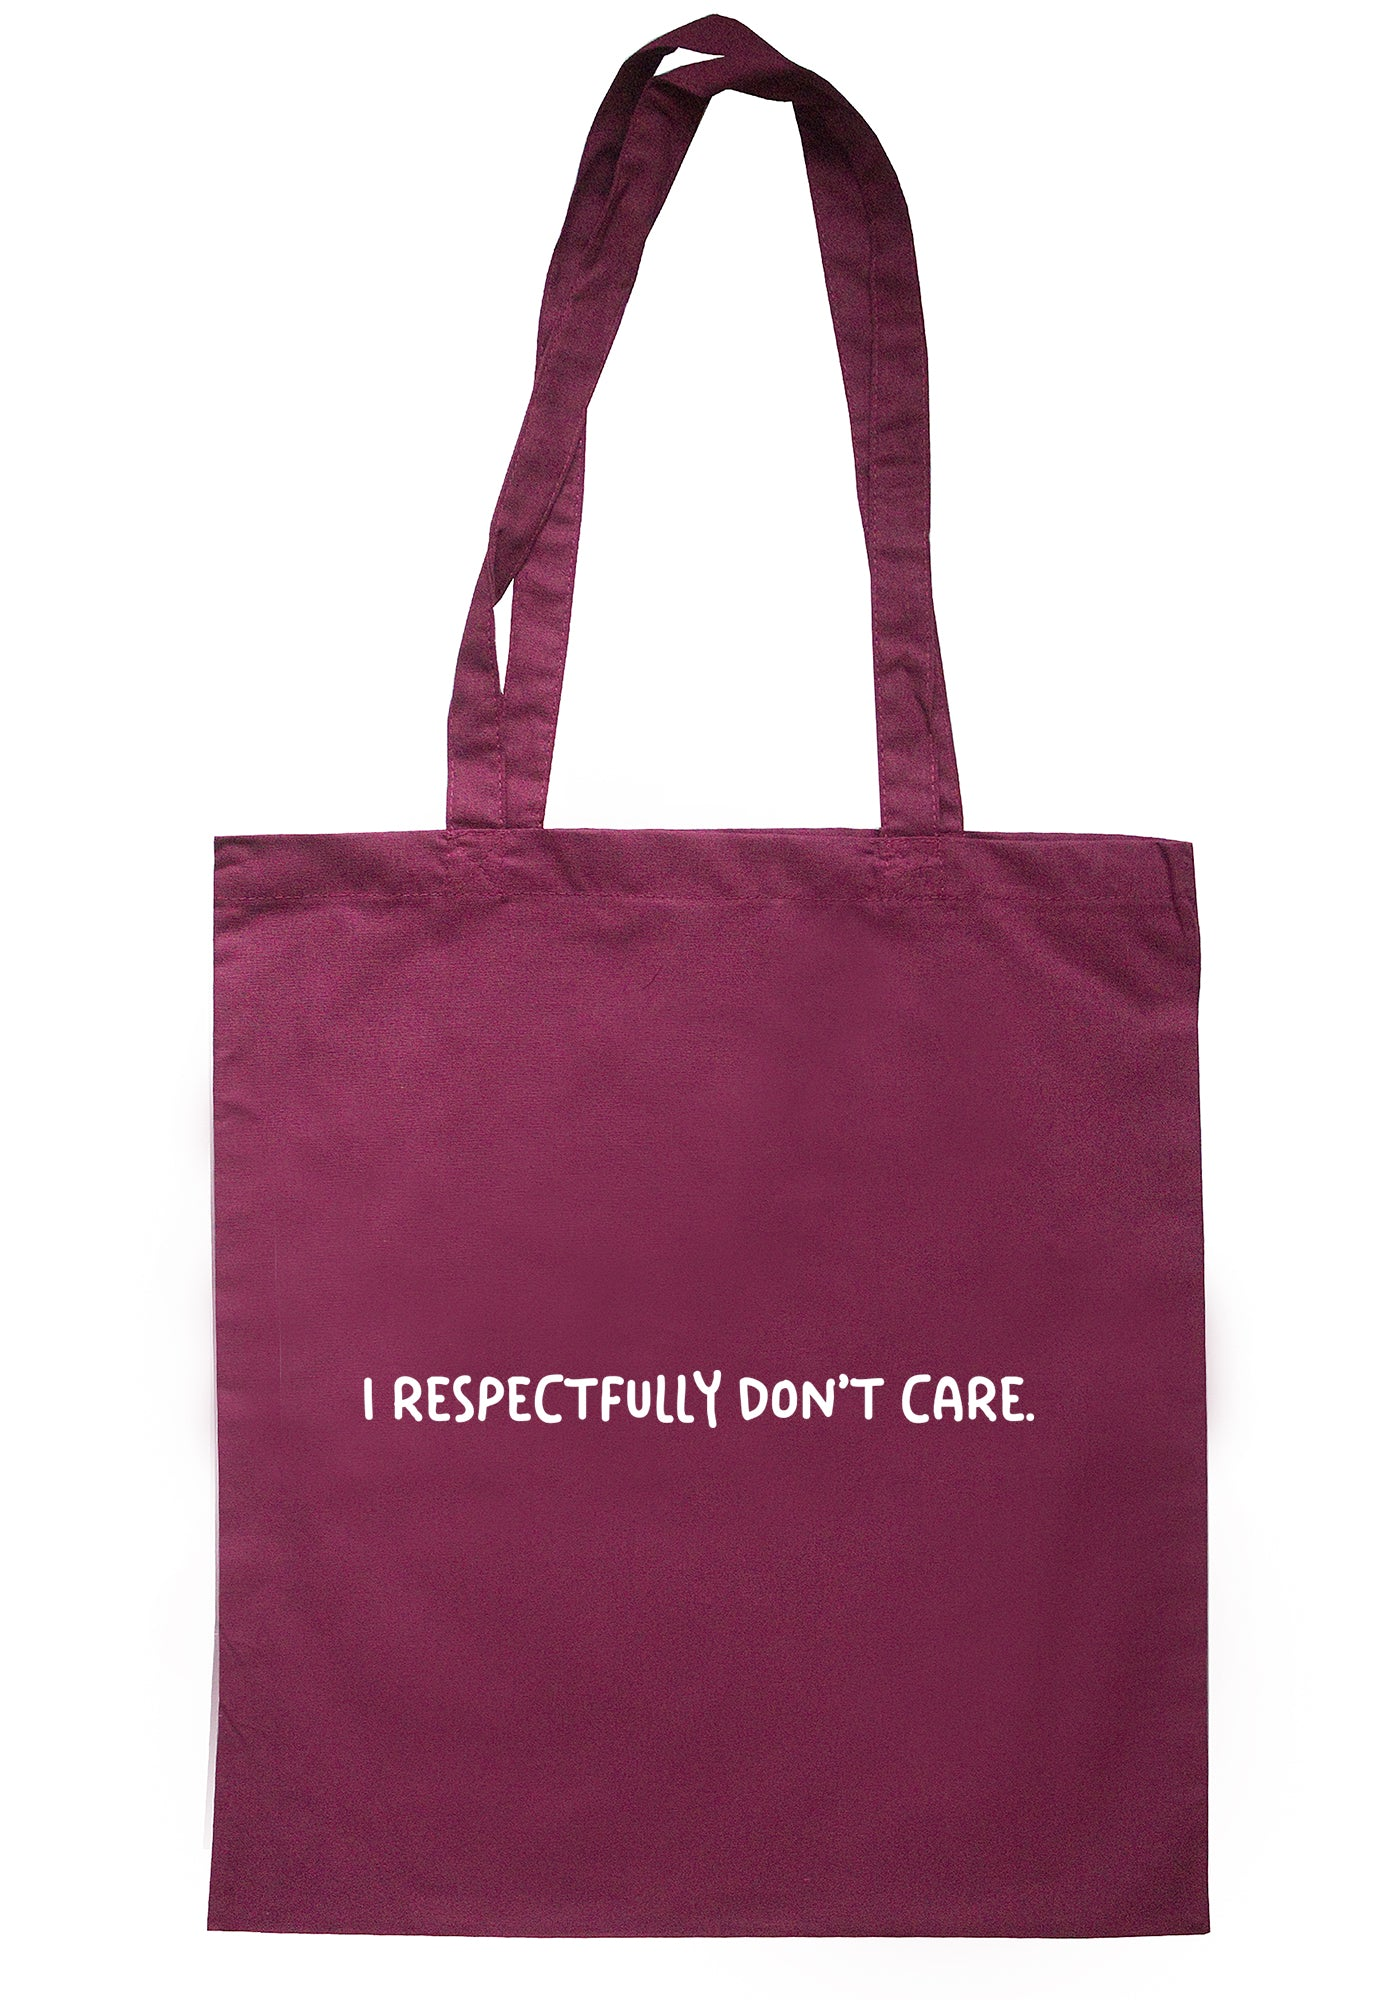 I Respectfully Don't Care Tote Bag S1207